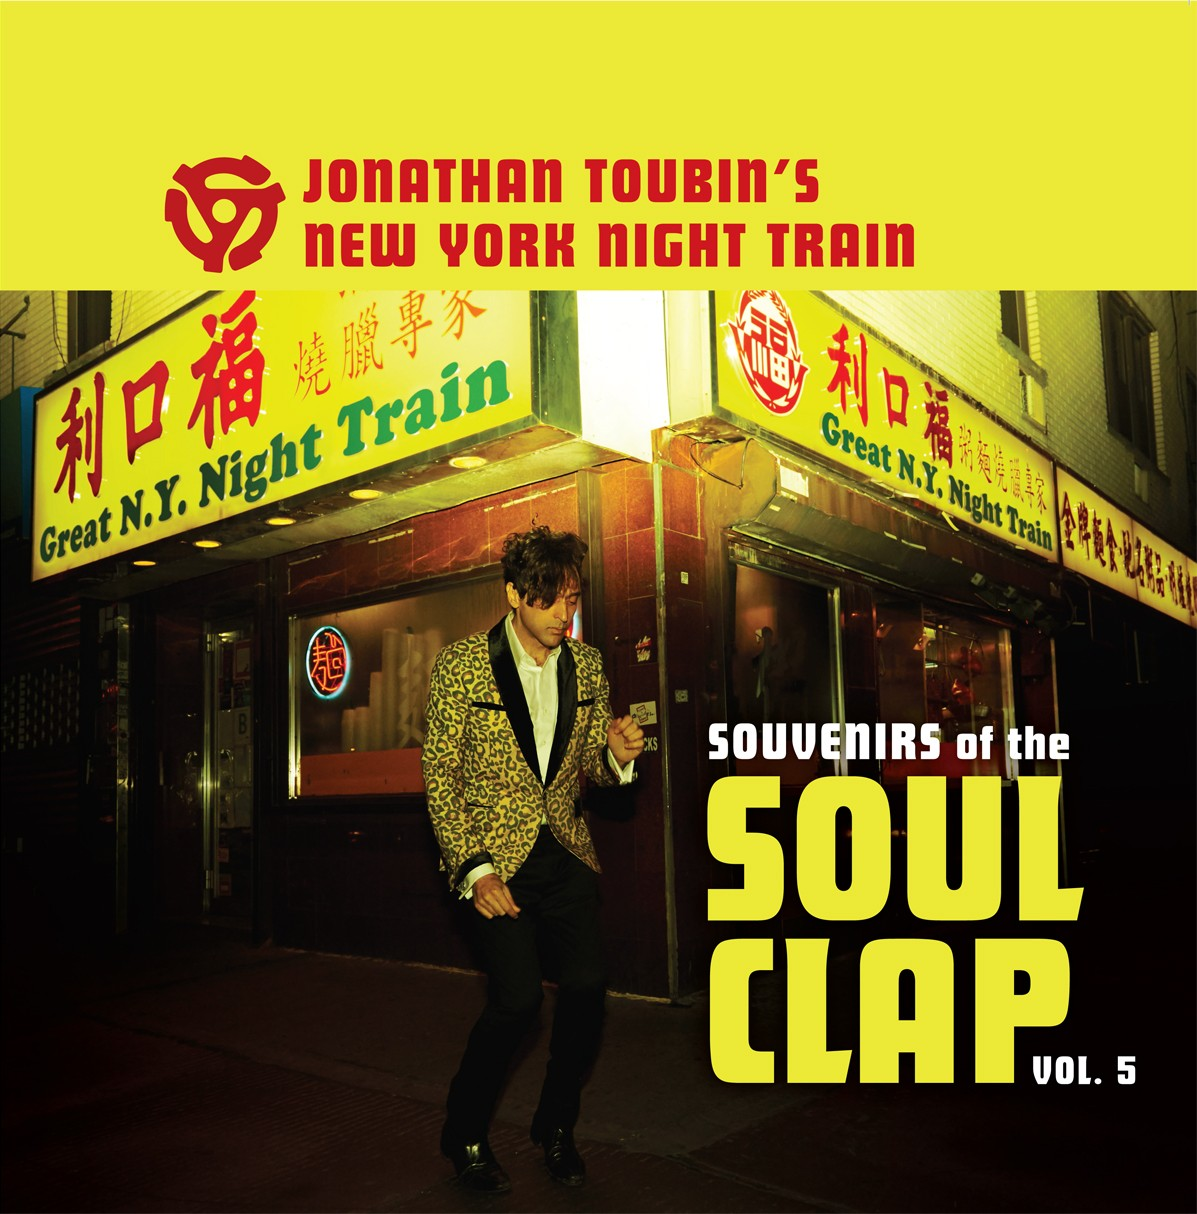 Soul Clap hits UFO tomorrow night so here's an amazing